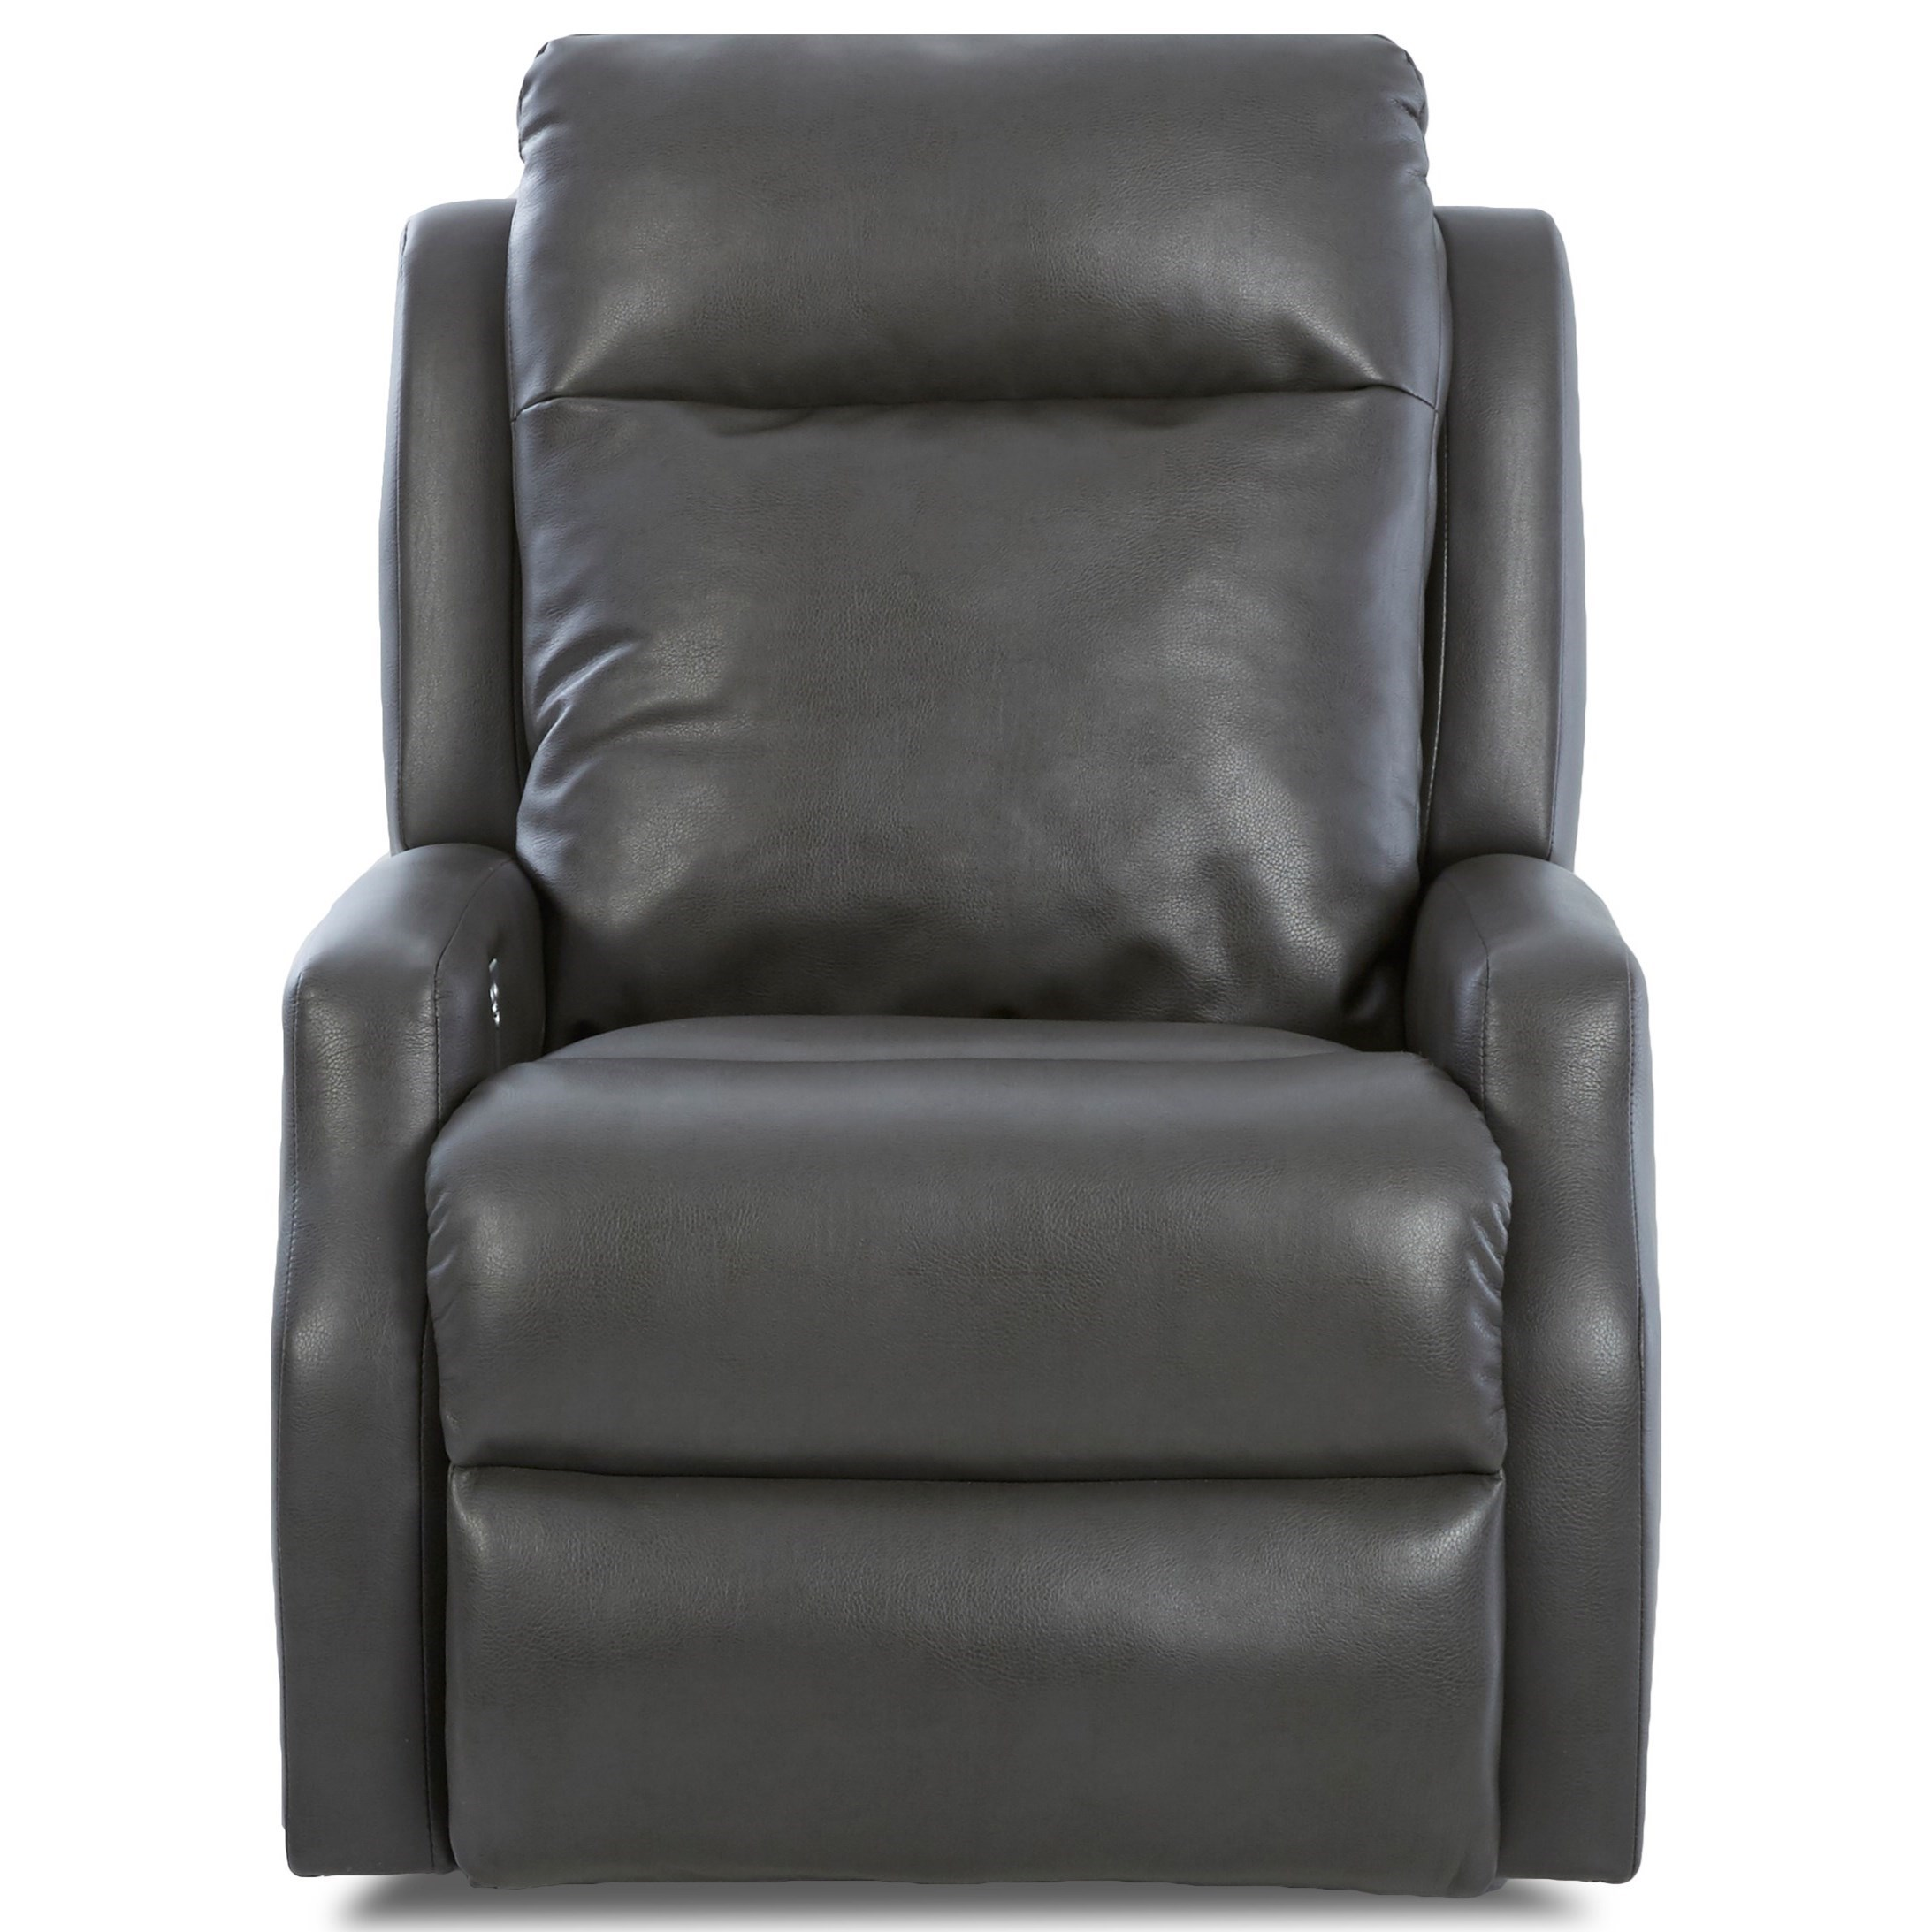 Klaussner Mirra Contemporary Power Reclining Chair With Power Headrest And  USB Charging Port